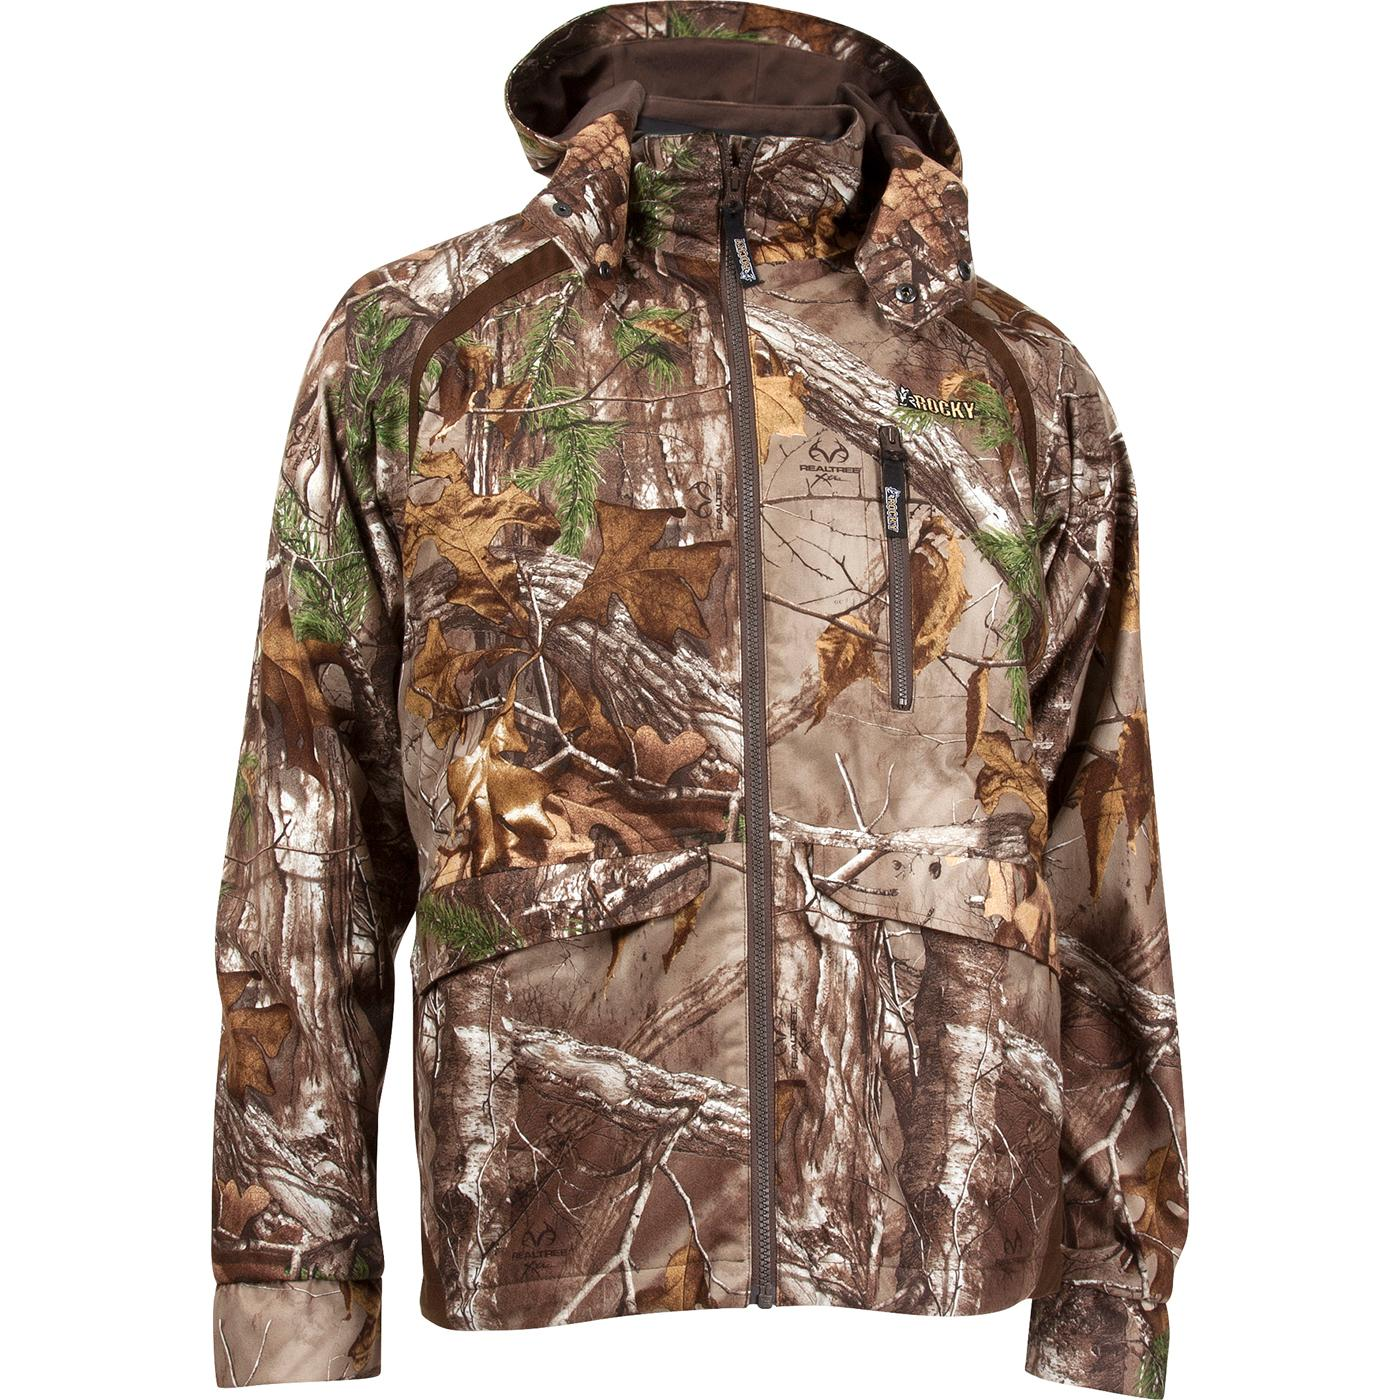 c850f3df50f77 Rocky ProHunter Waterproof Convertible Outdoor Parka, Rltre Xtra, large